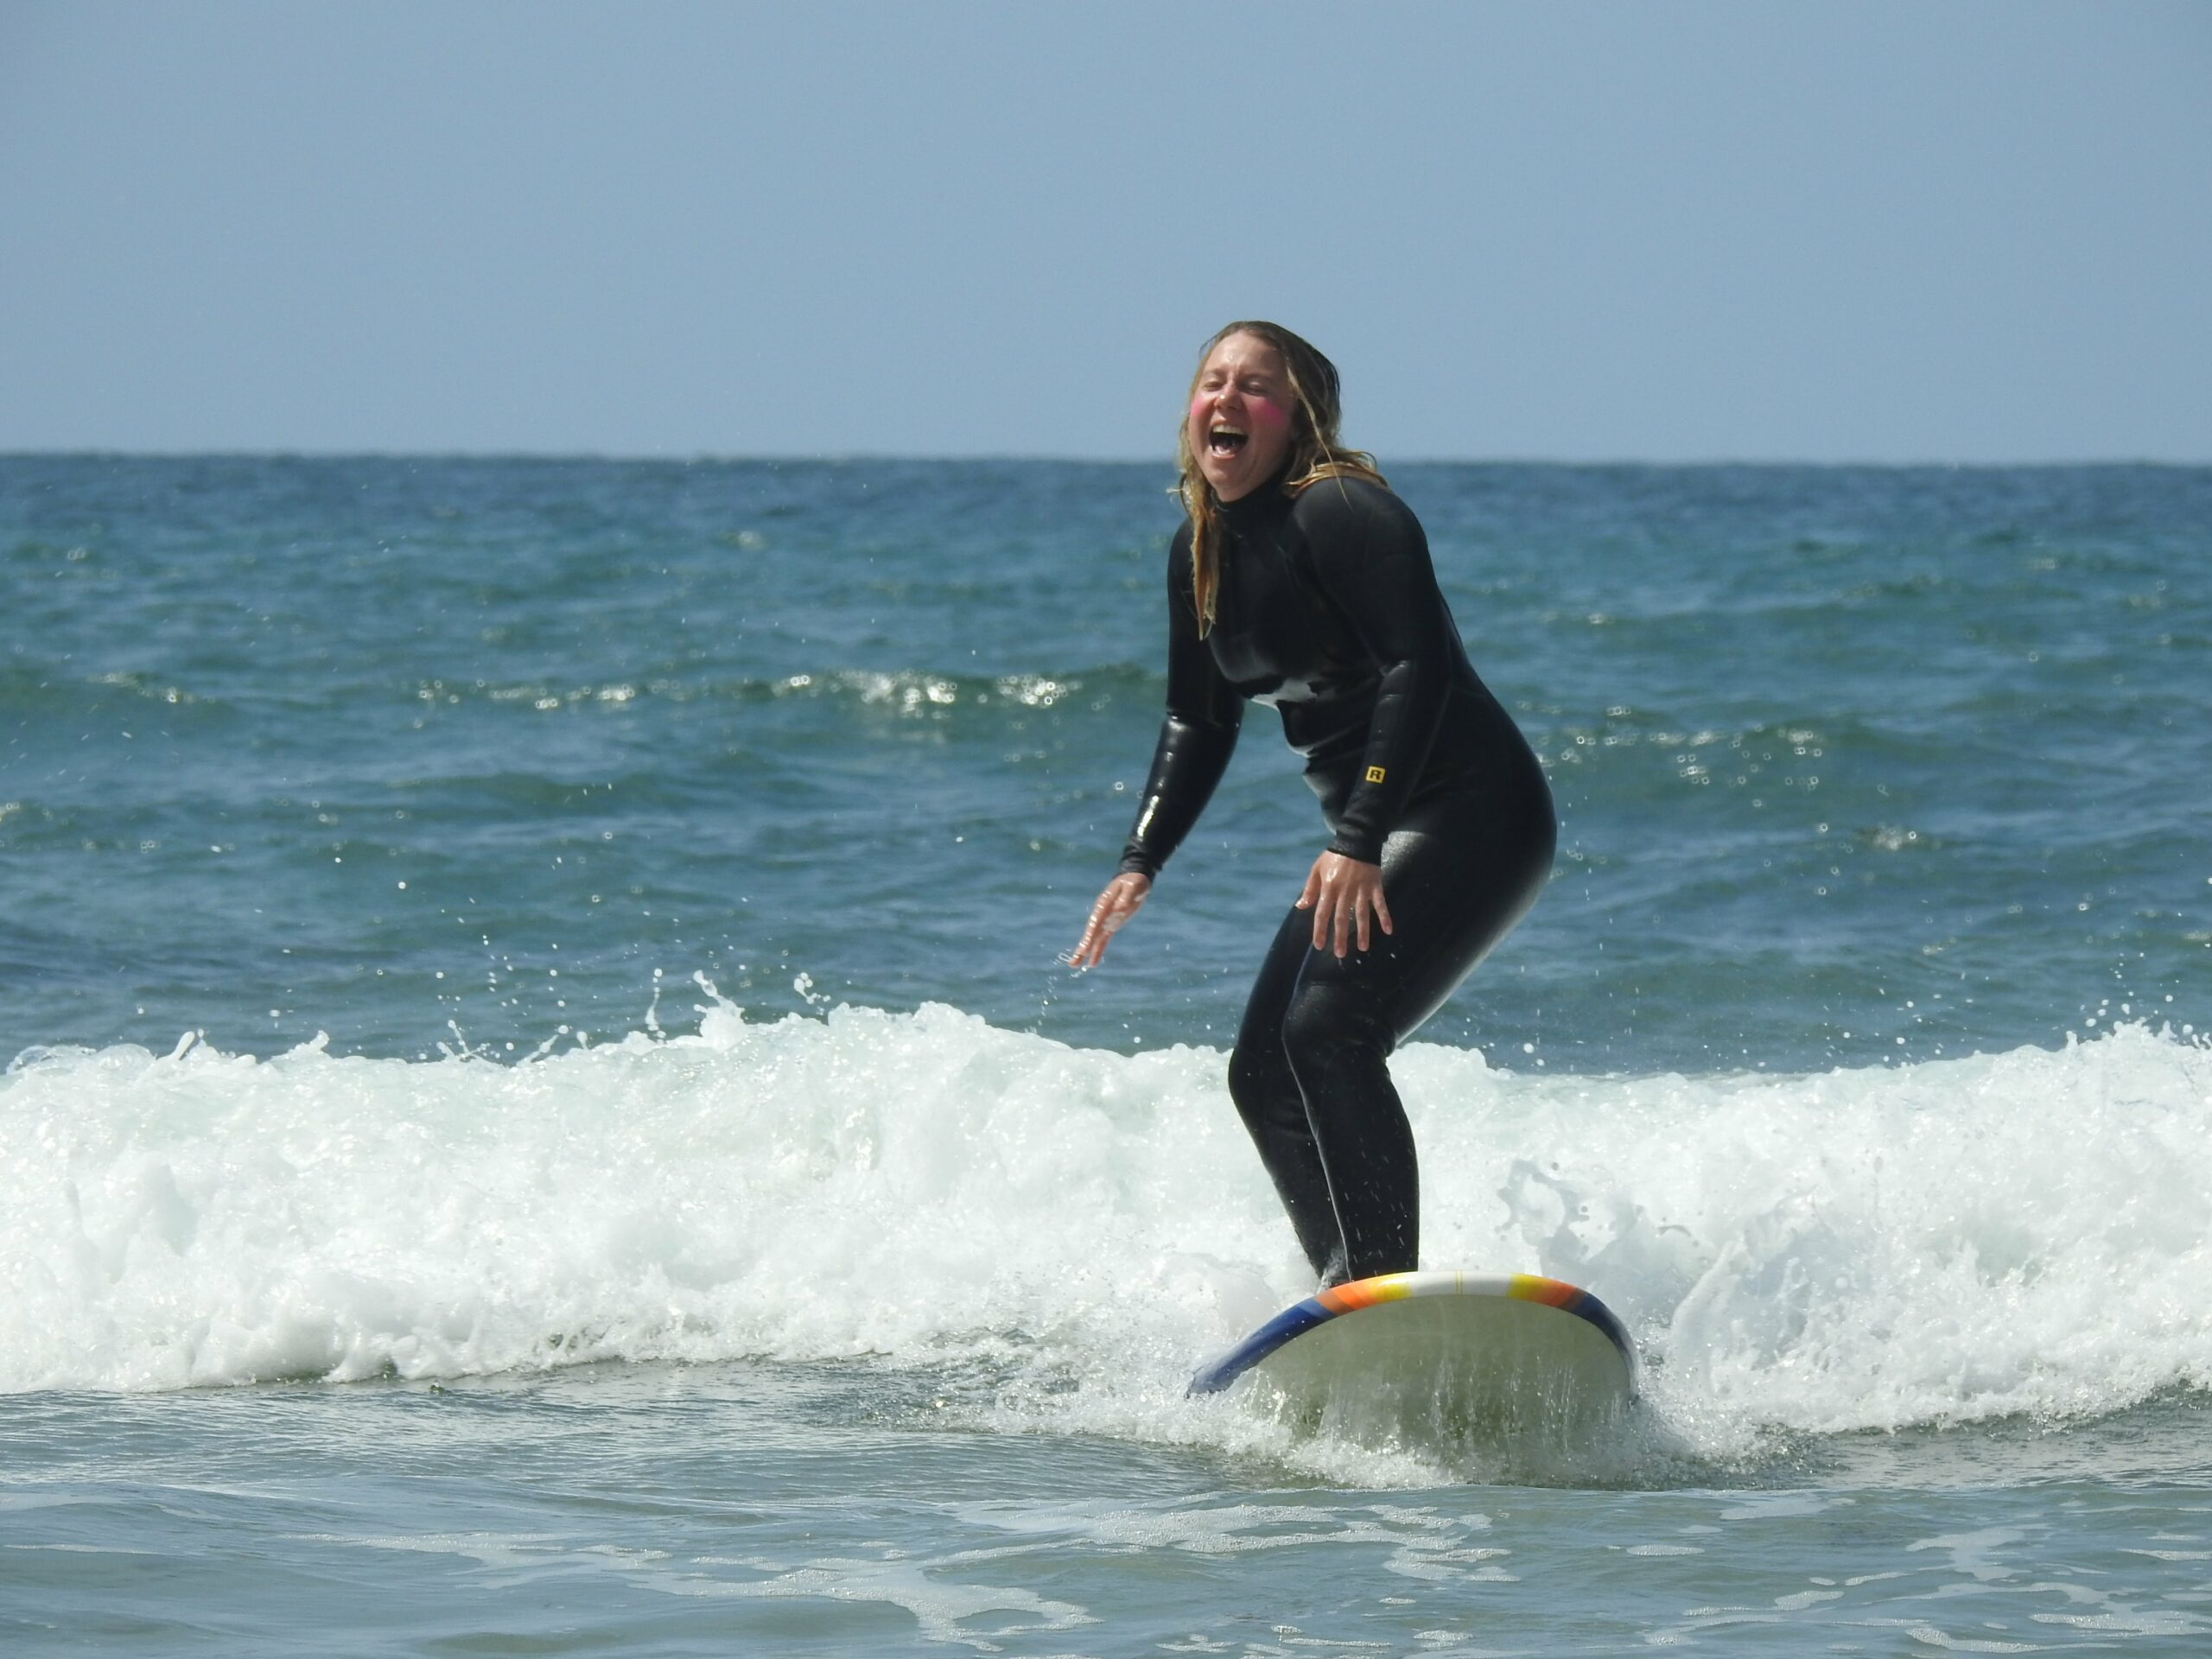 woman surfing and laughing